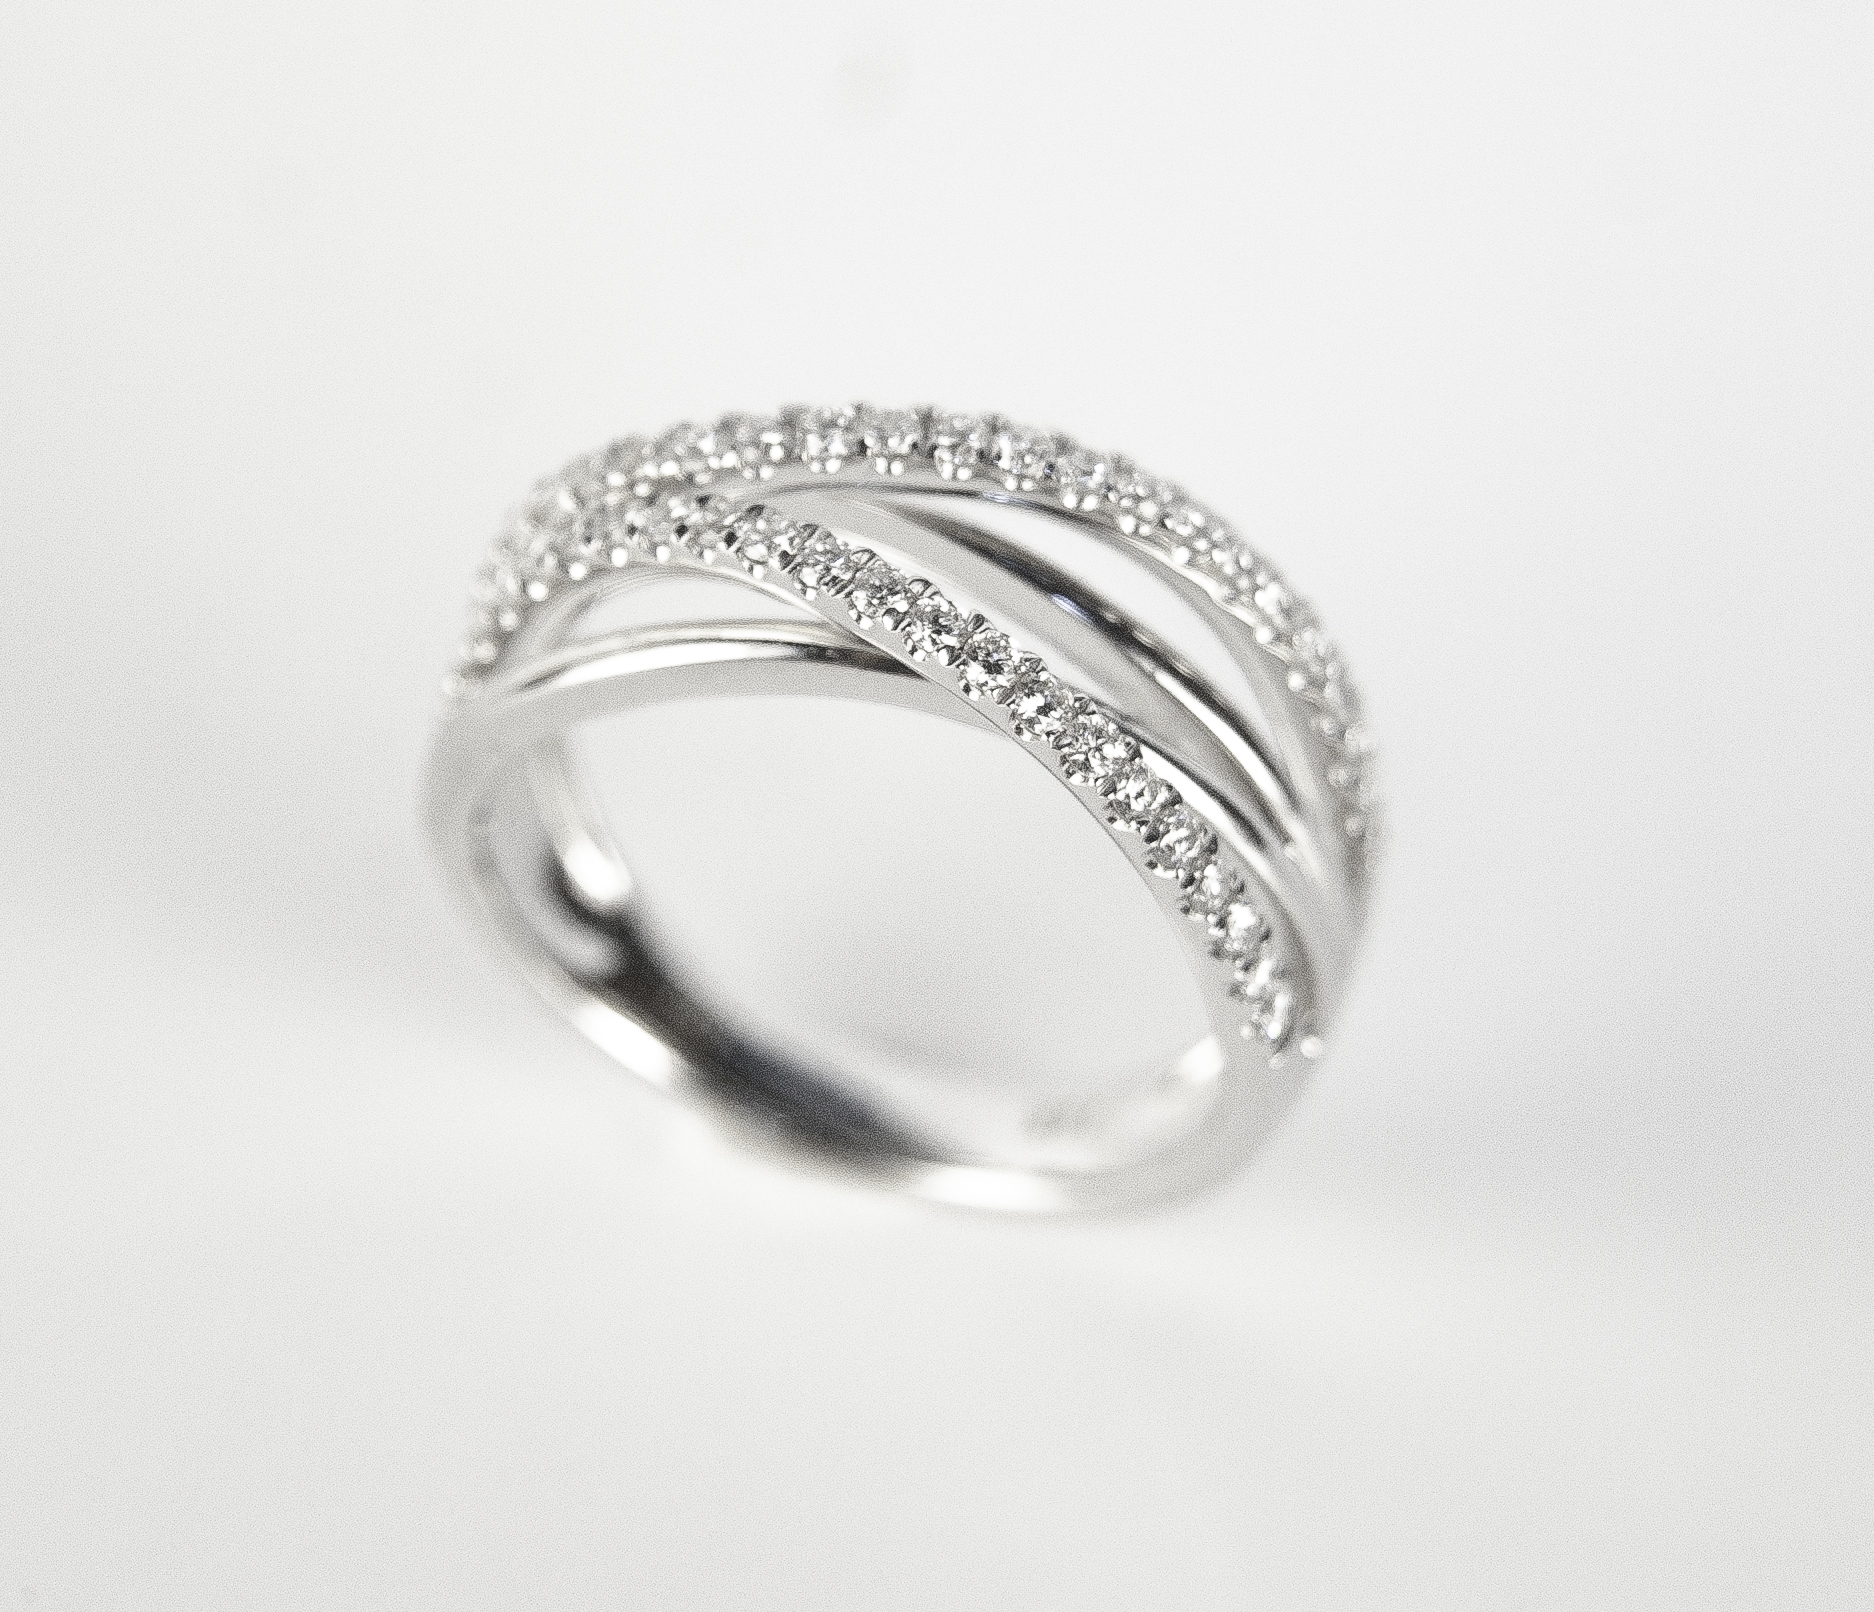 130-289   14 Karat White Gold Fashion Ring Size 6.5 With 0.40Tw Round Diamonds $1,650.00